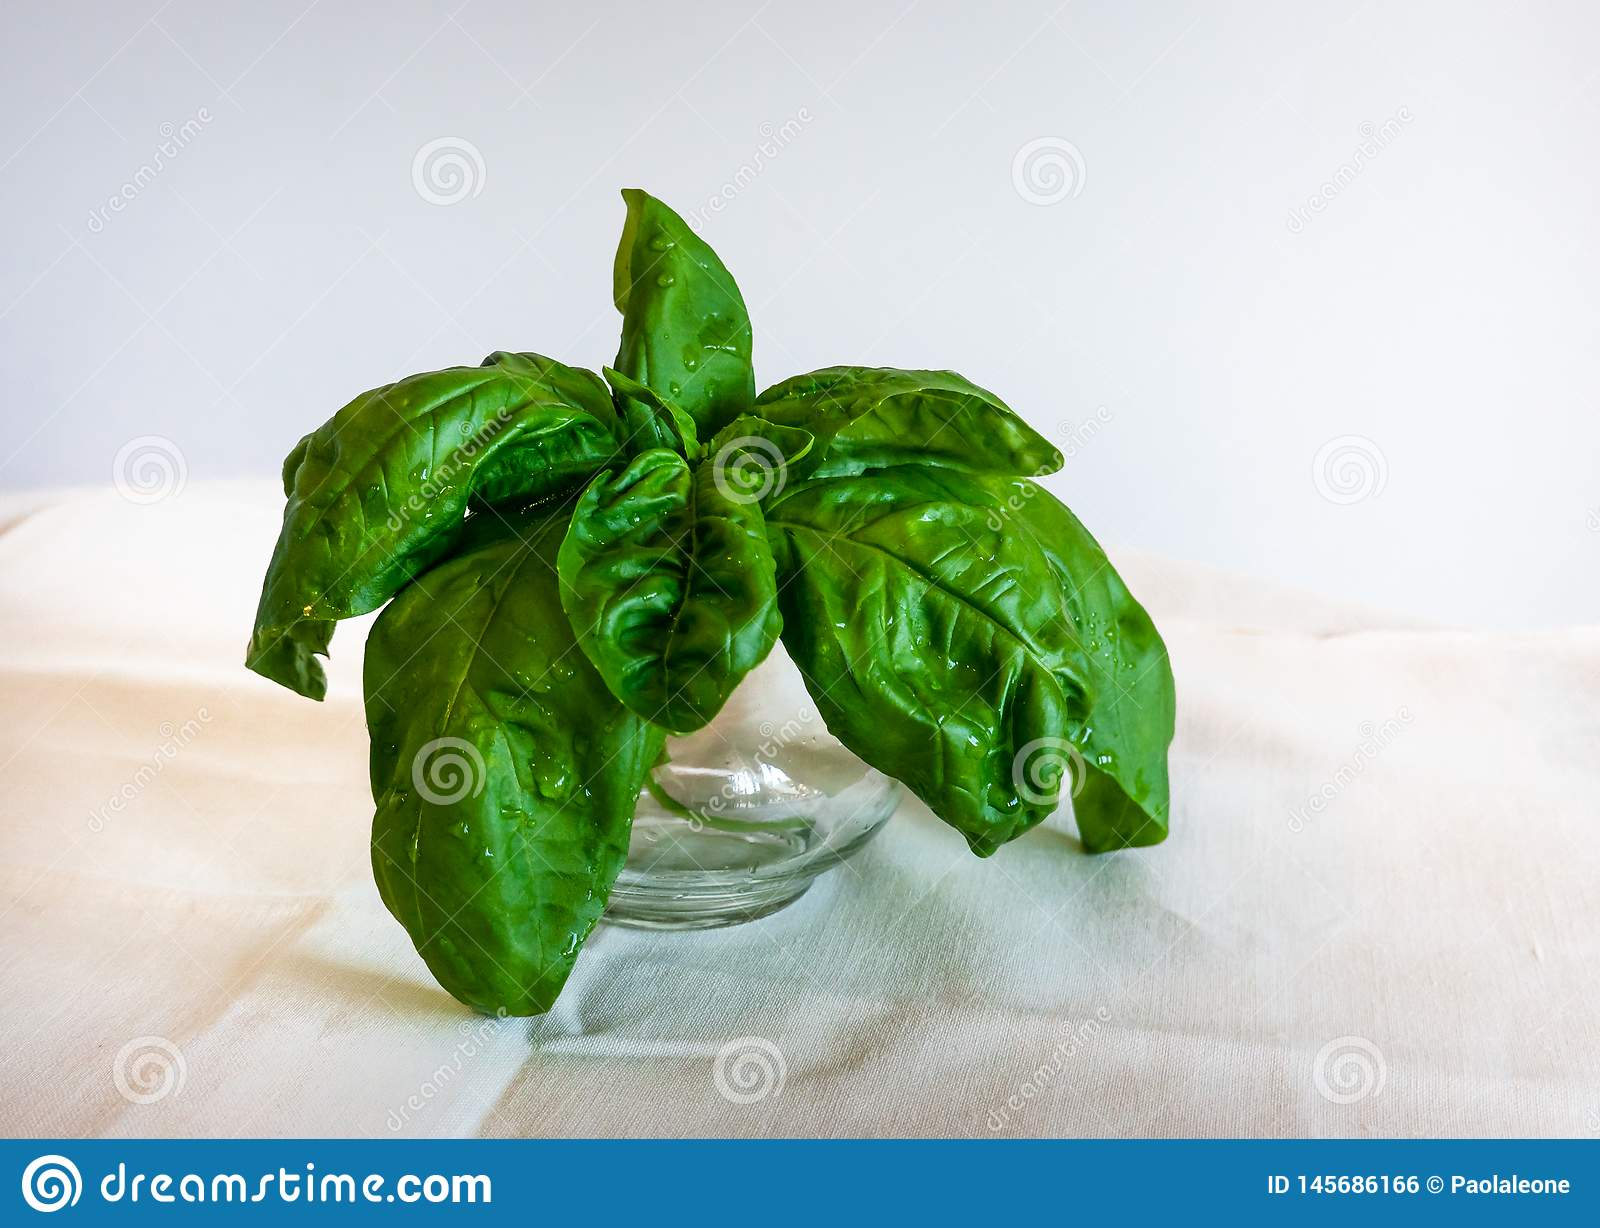 Basil Leaves in a Glass Cup on white Background. Healthy Herbs for Cooking